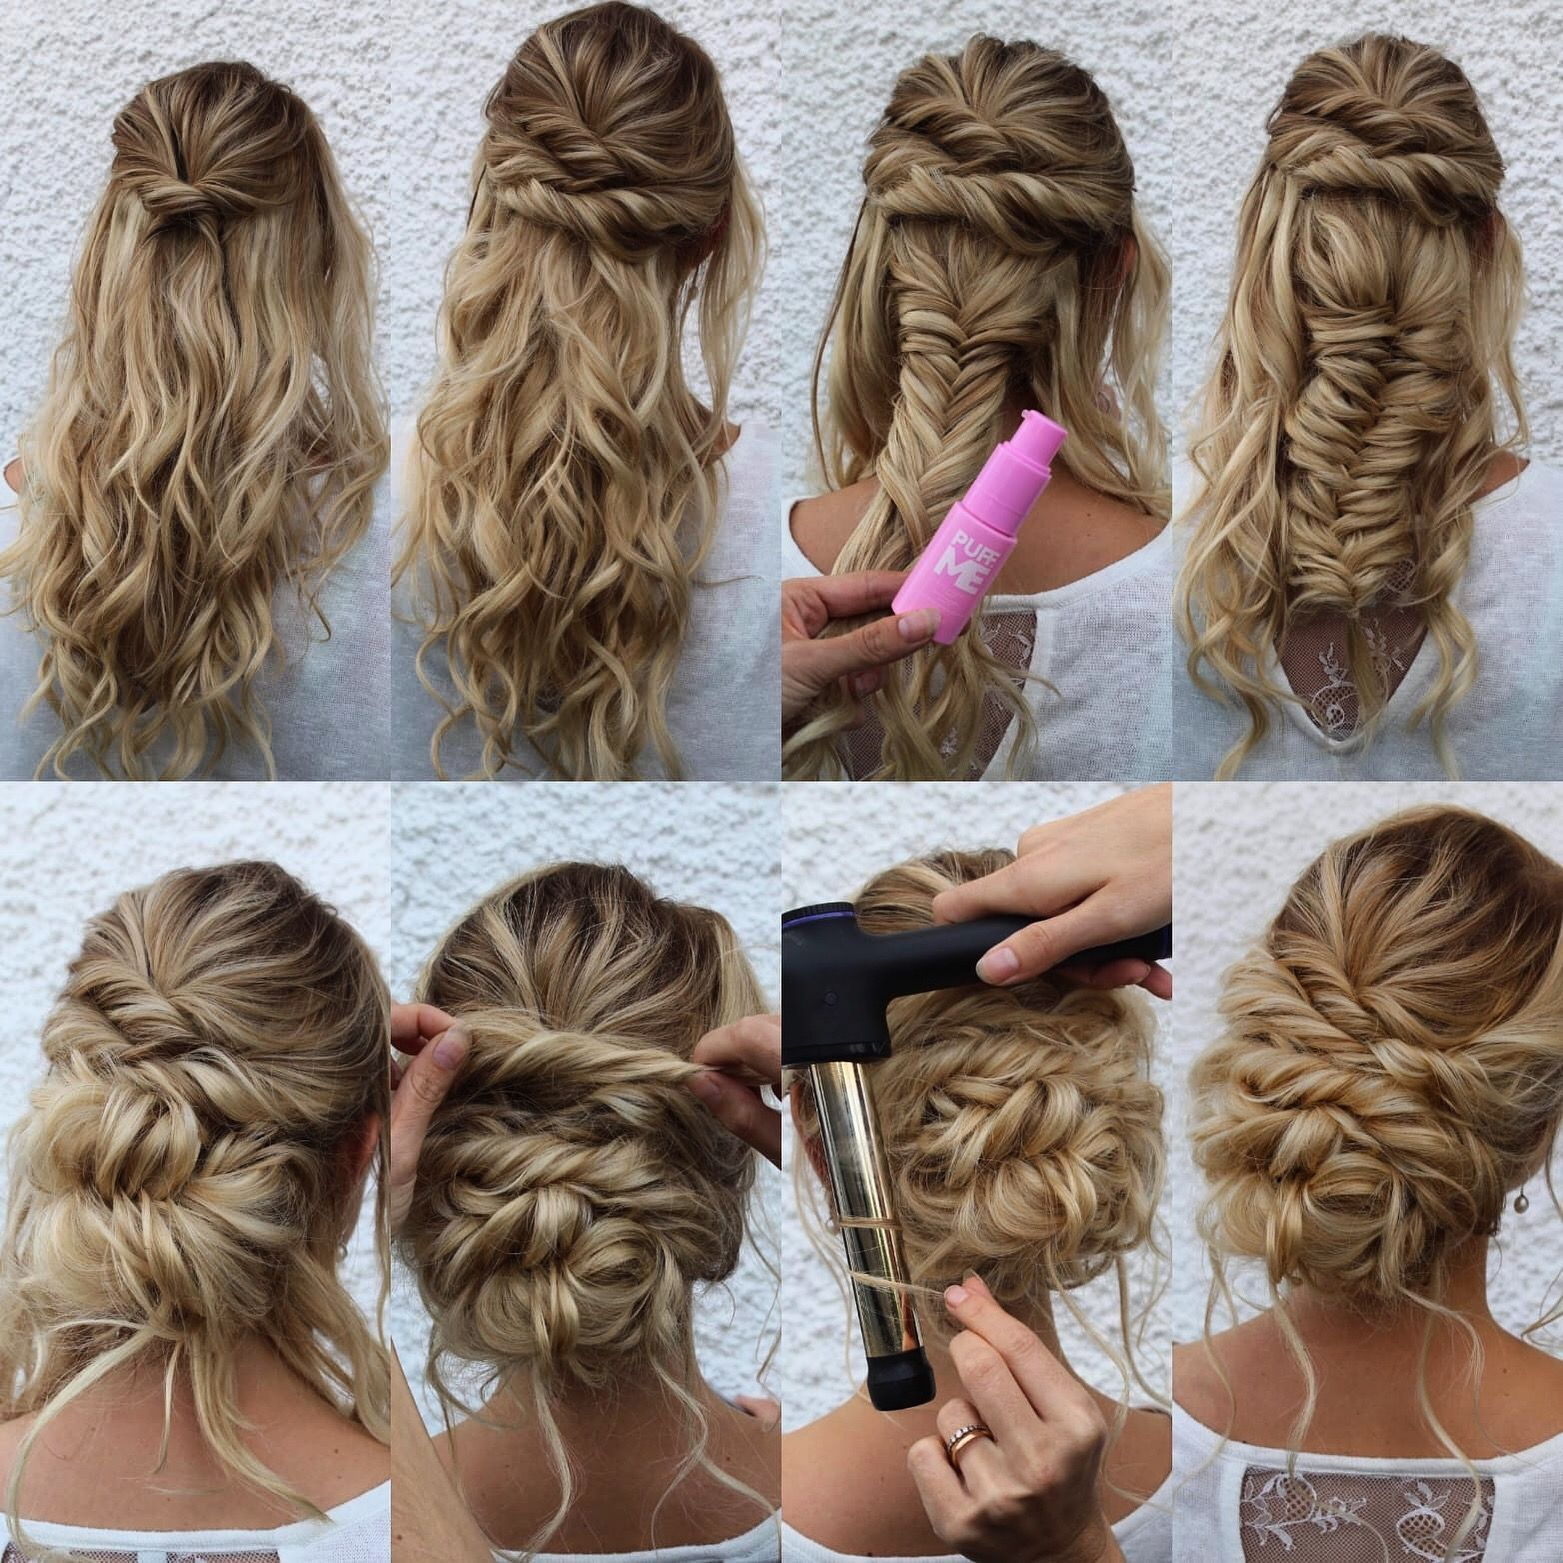 Step by step hair updo tutorial ad_1 #updo #theupdogirl ...